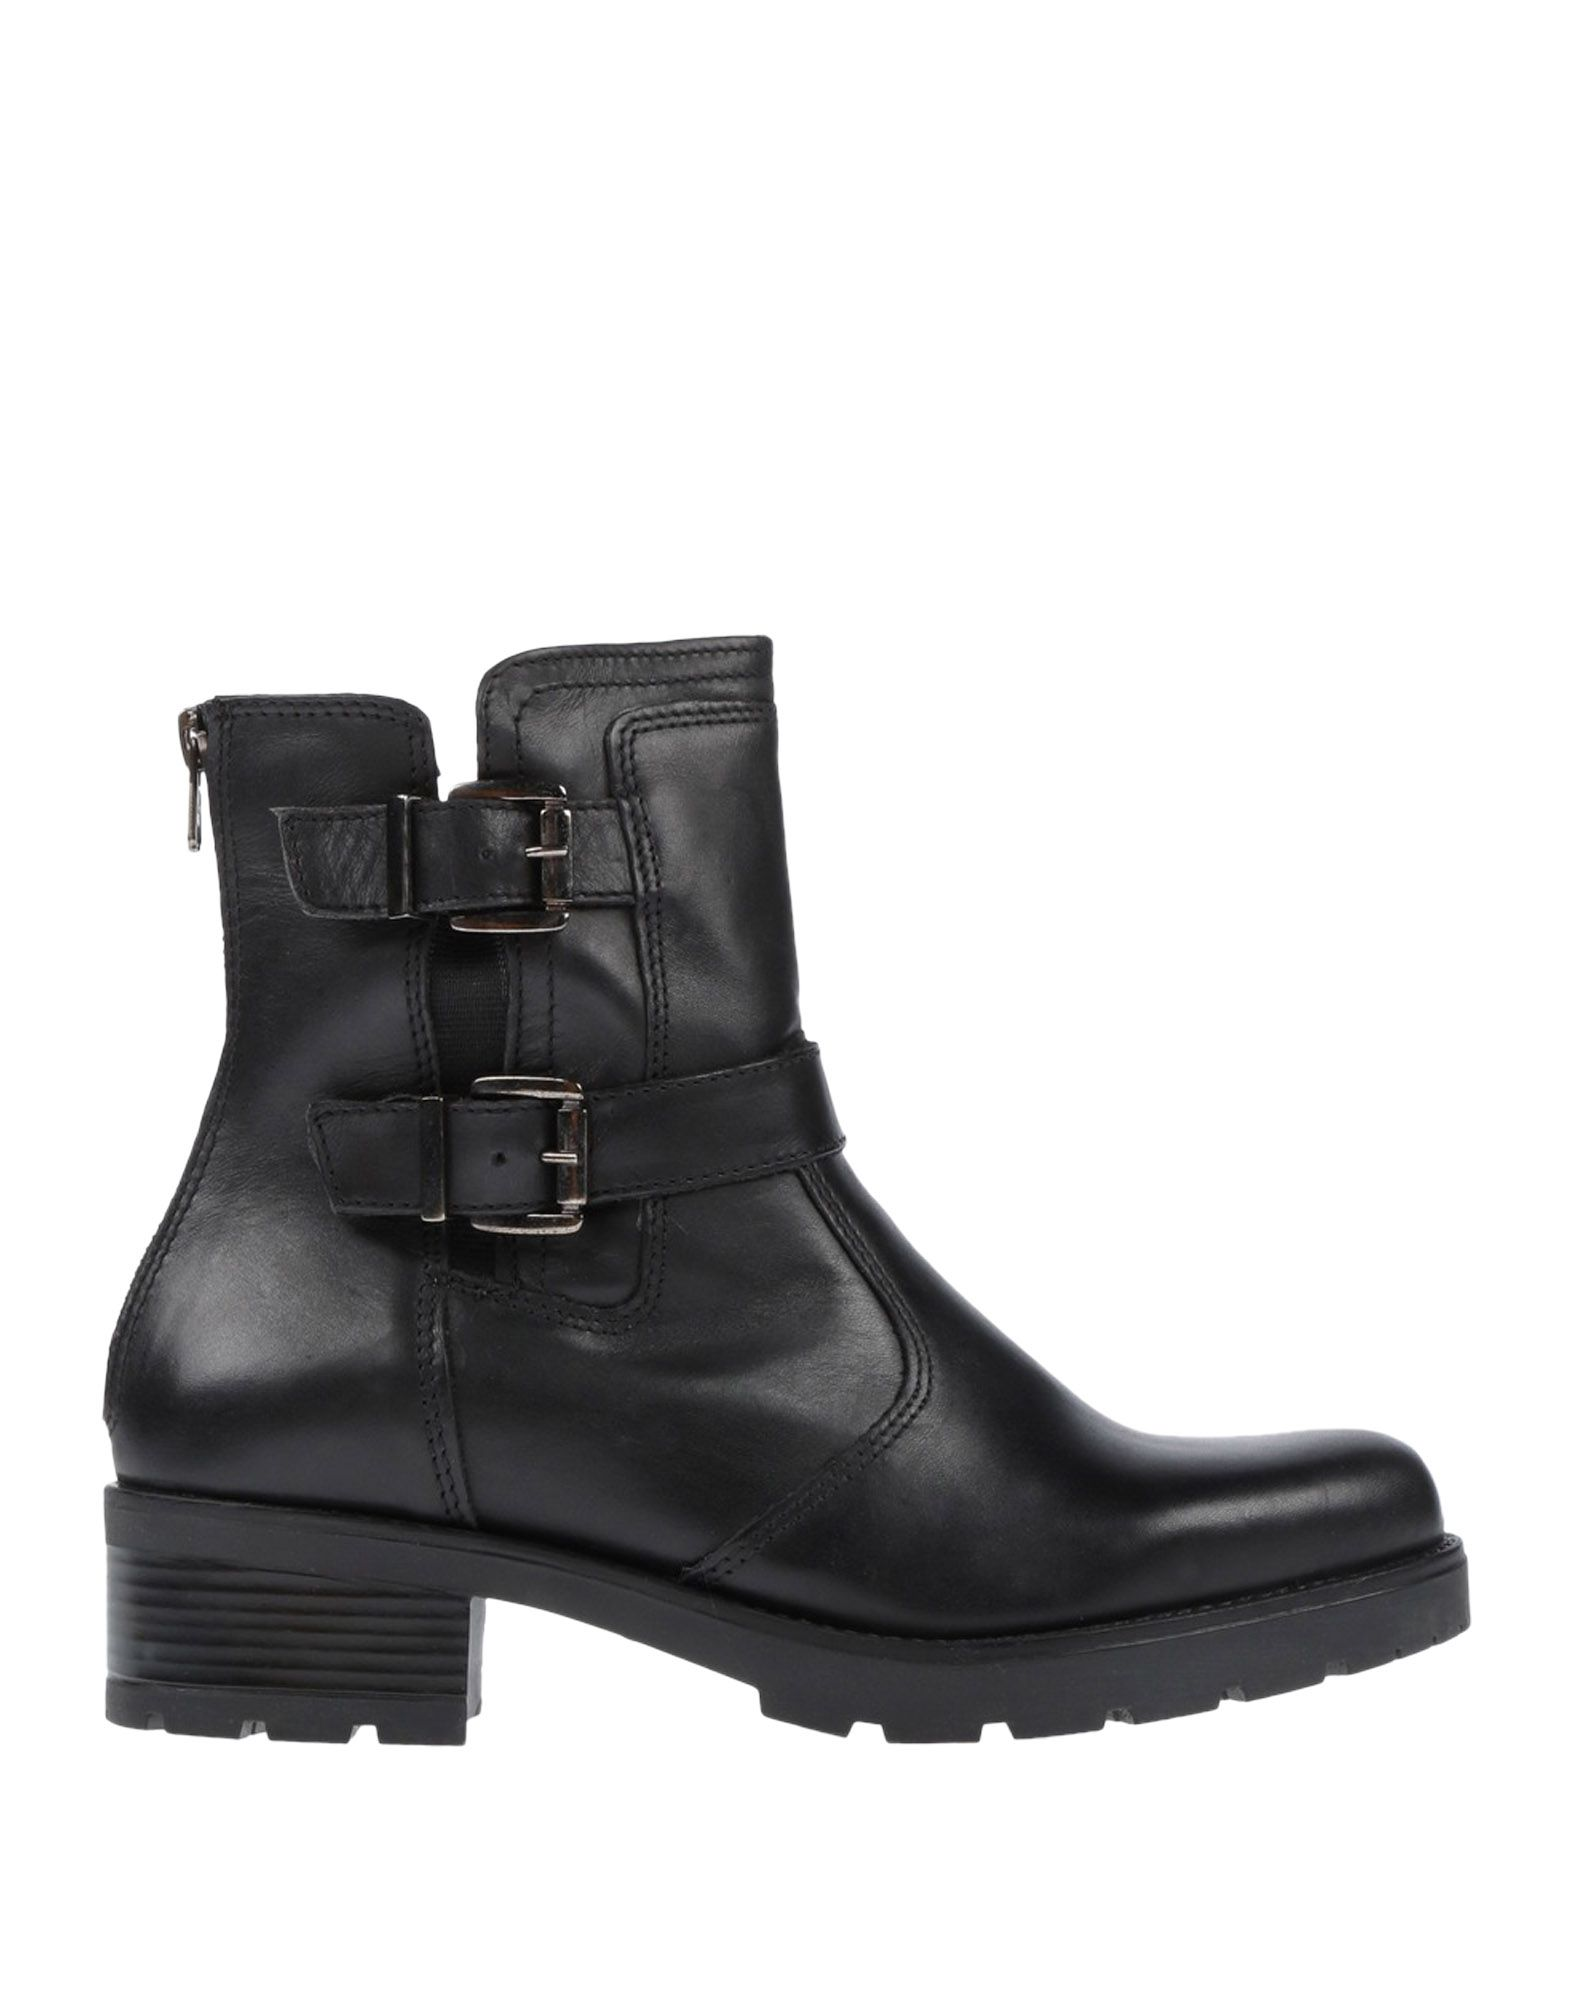 Bottine Primafemmes Femme - Bottines Primafemmes   - 11534260RU